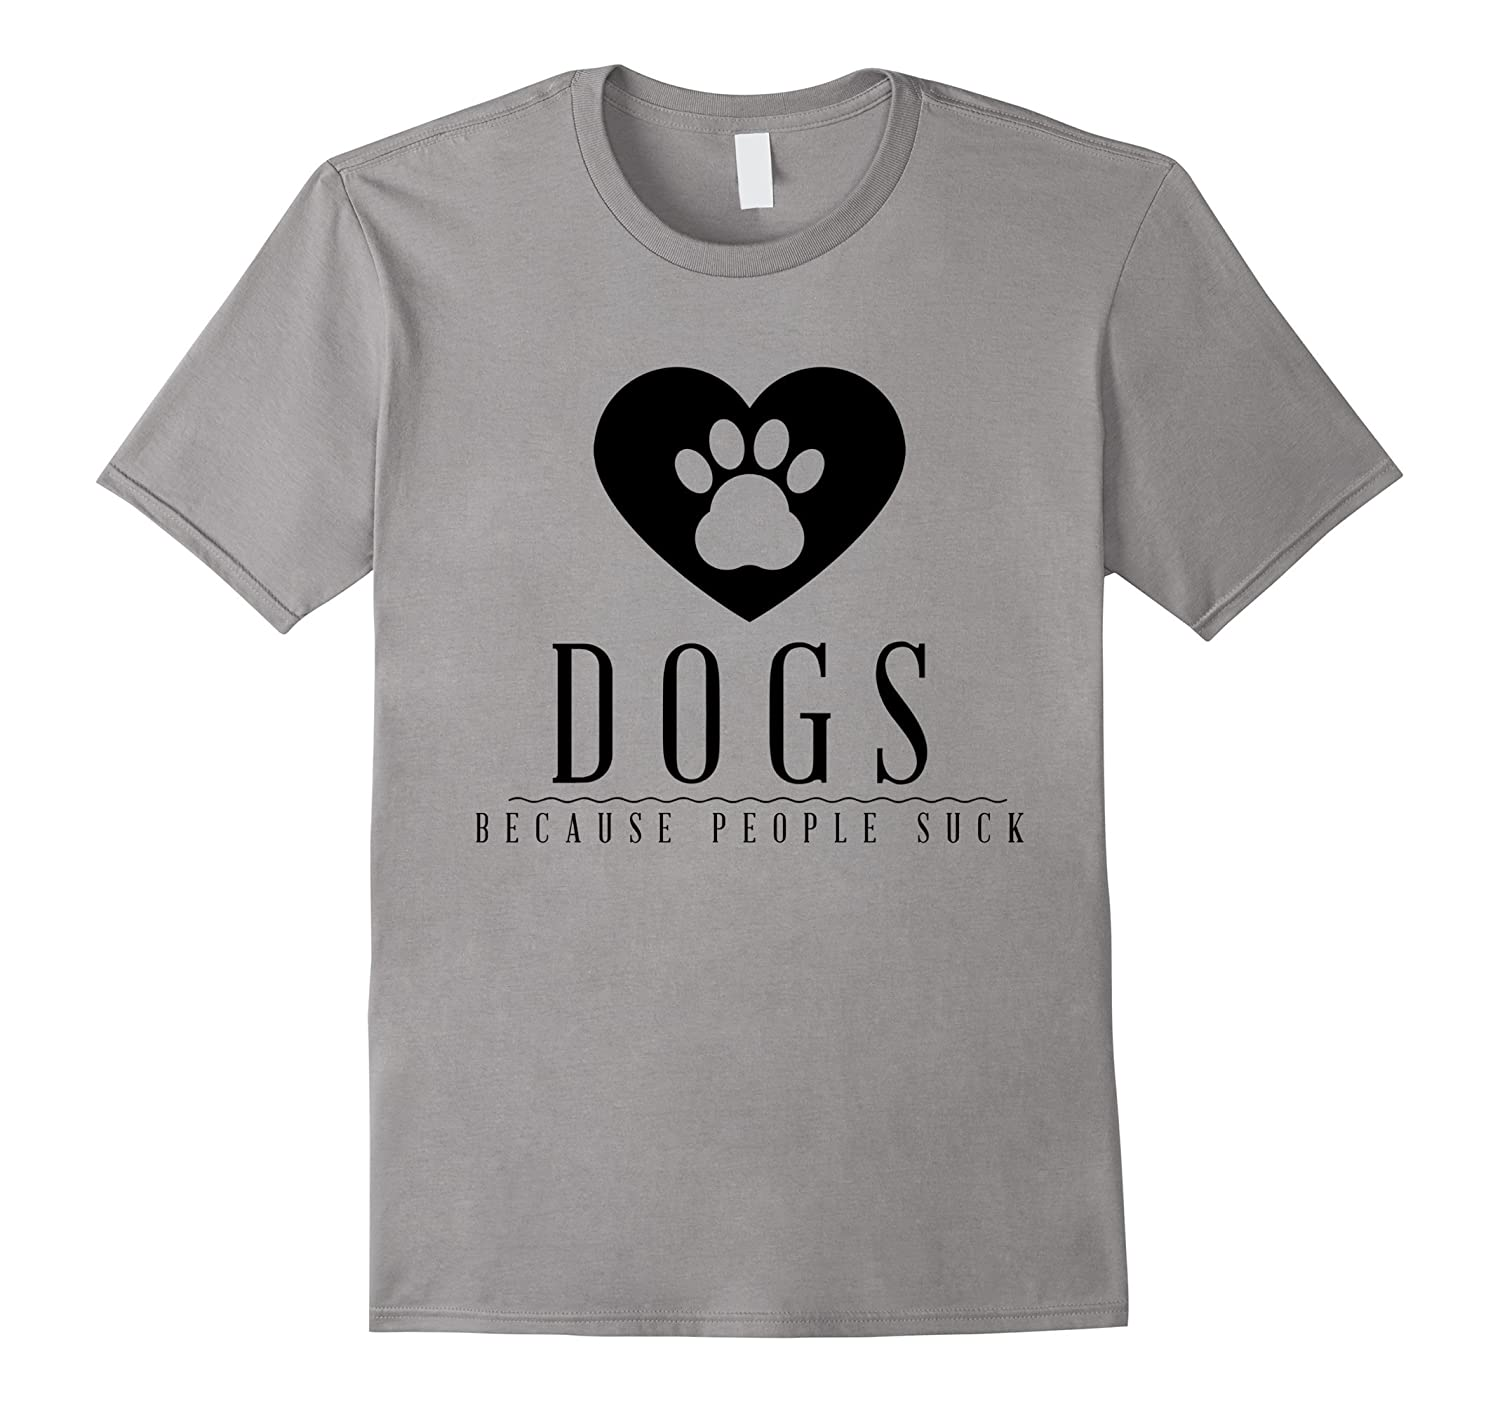 Dogs Because People Suck Funny Sarcastic T Shirt- TPT